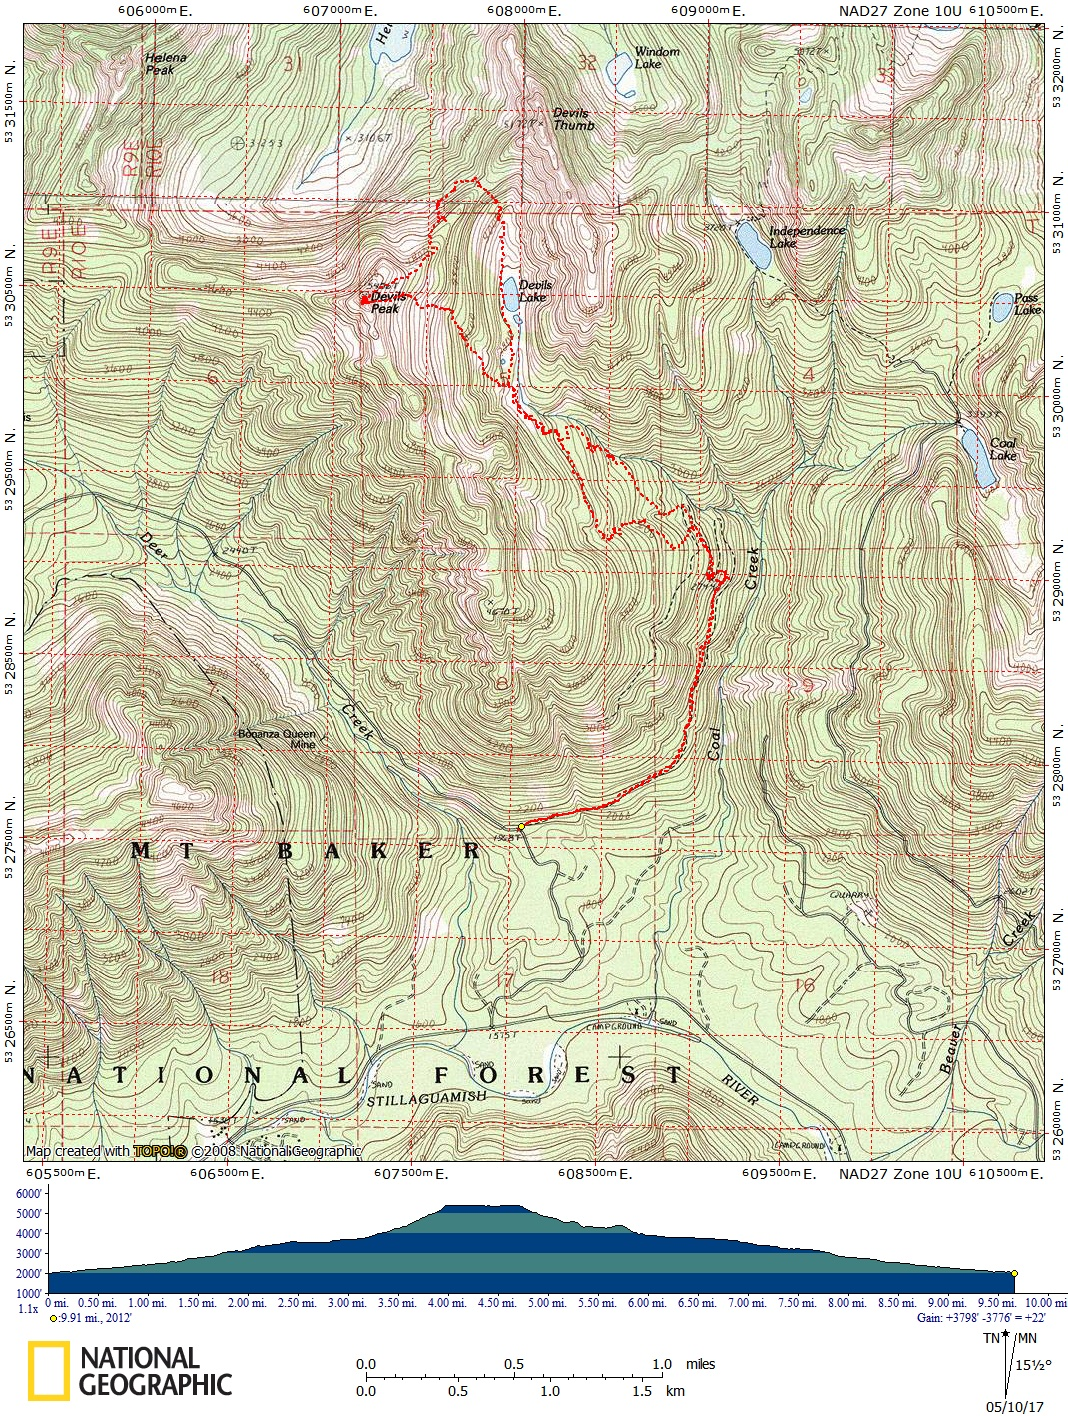 A topo map made by Brett Dyson of the Devil's Peak/South Ridge route using National Geographic Topo! software on May 9, 2017.